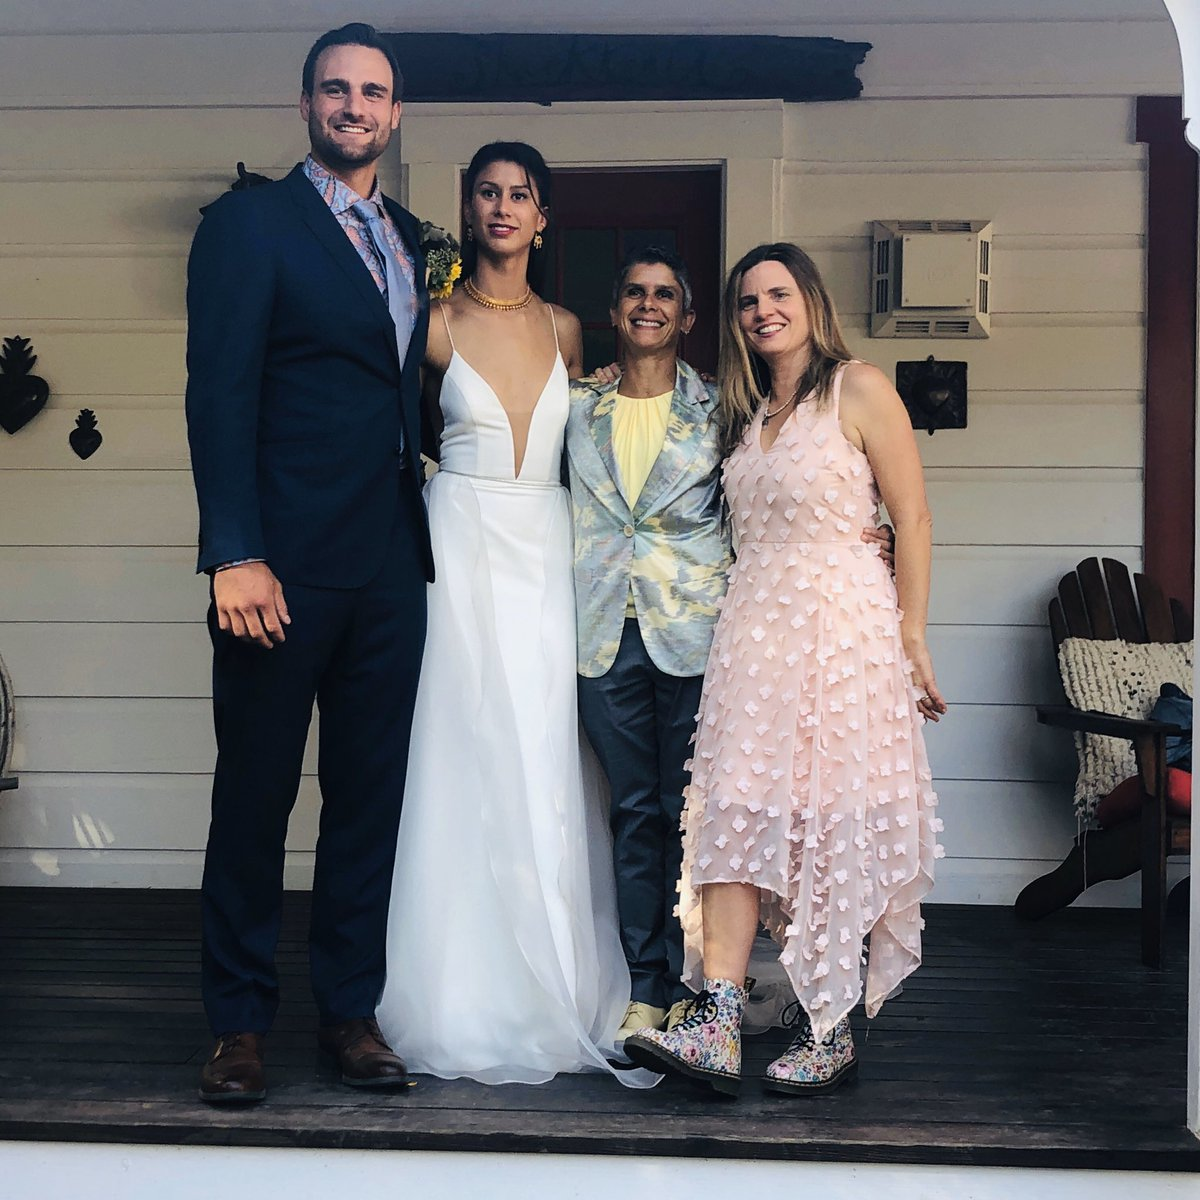 To all those following along as I had a minor meltdown over the pre-wedding @PGE4Me #poweroutage it all worked out in the end and the wedding was beautiful. Thanks for your supportive tweets that helped me get through those stressful days! Do you like my shoes? 🤣